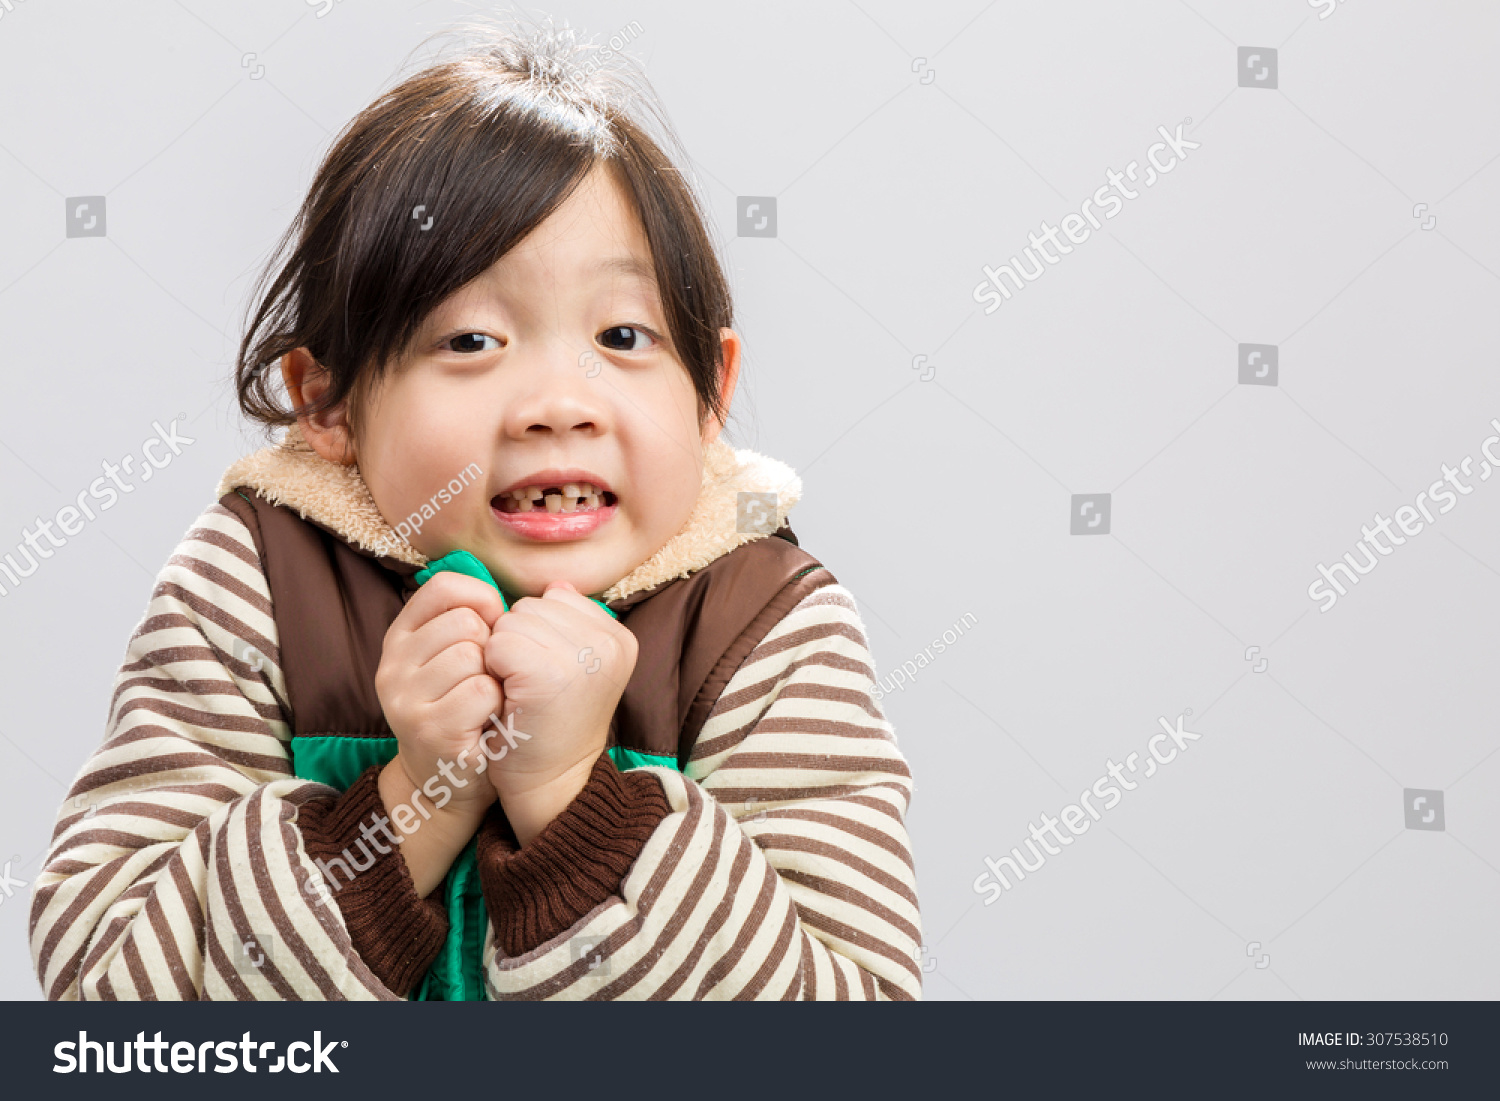 Child Shivering Stock Photo 307538510 : Shutterstock